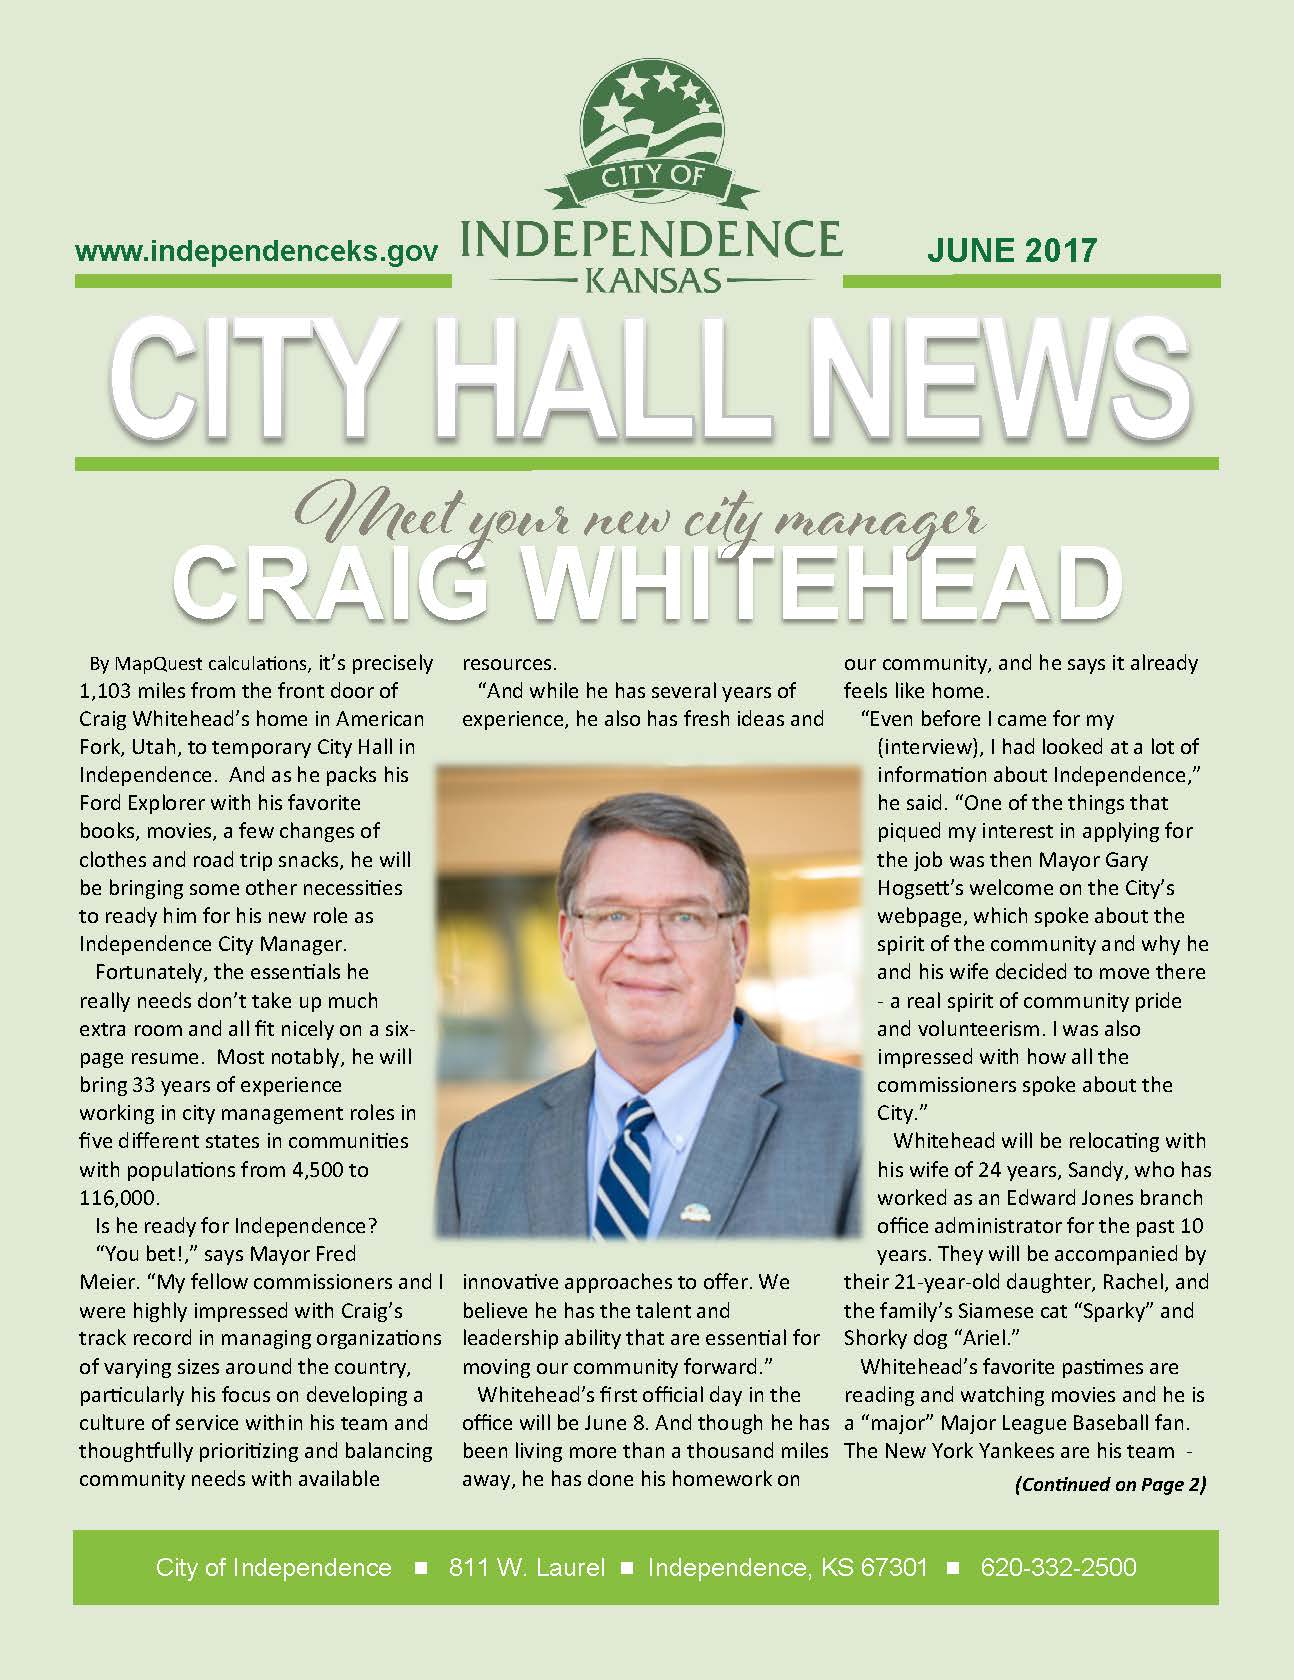 City of Independence June 2017 Newsletter